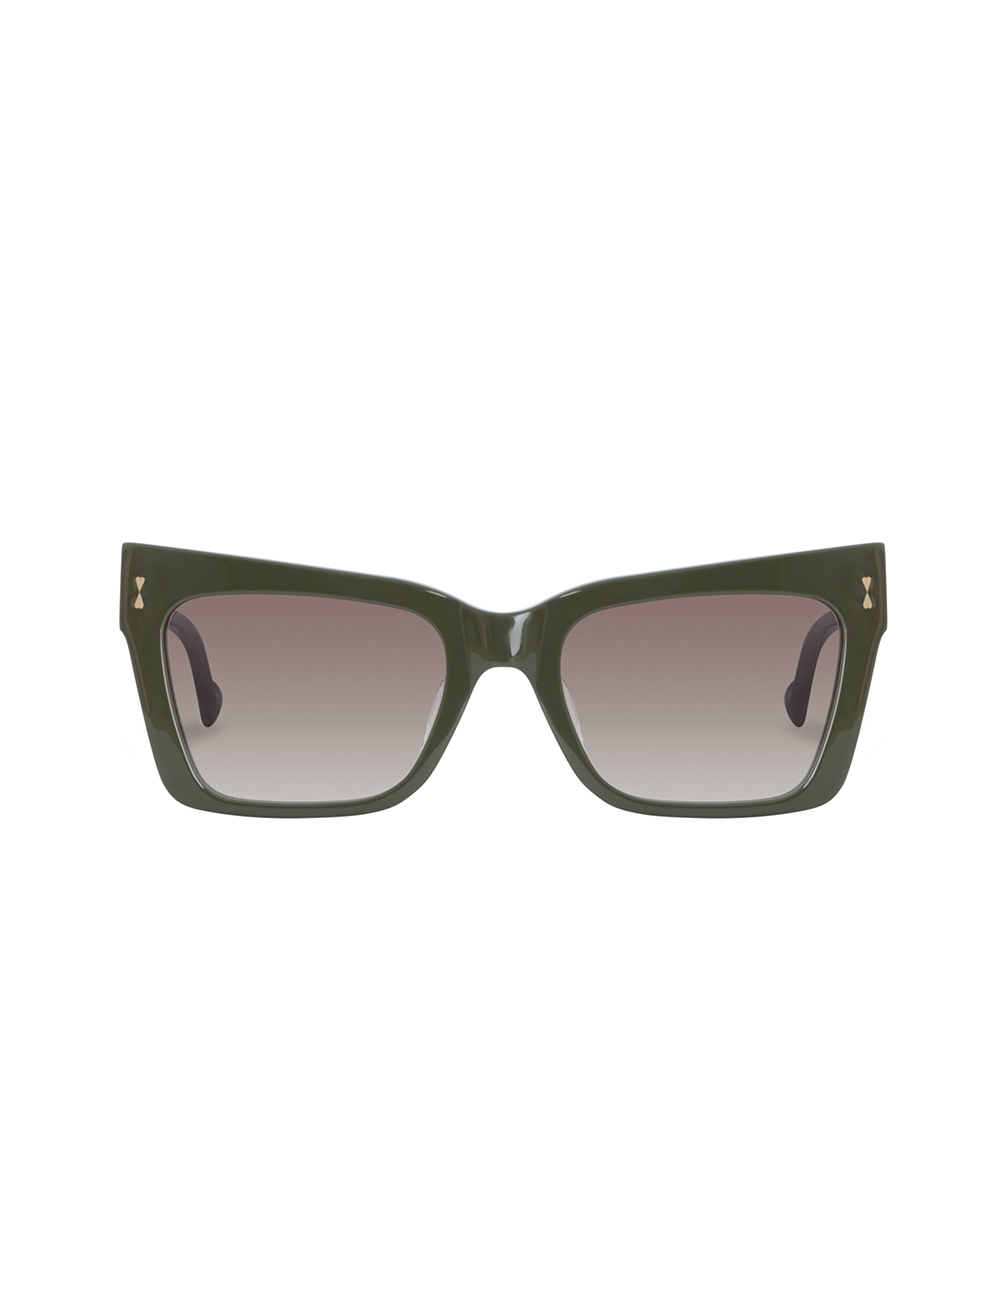 Cipher Cateye Sunglasses